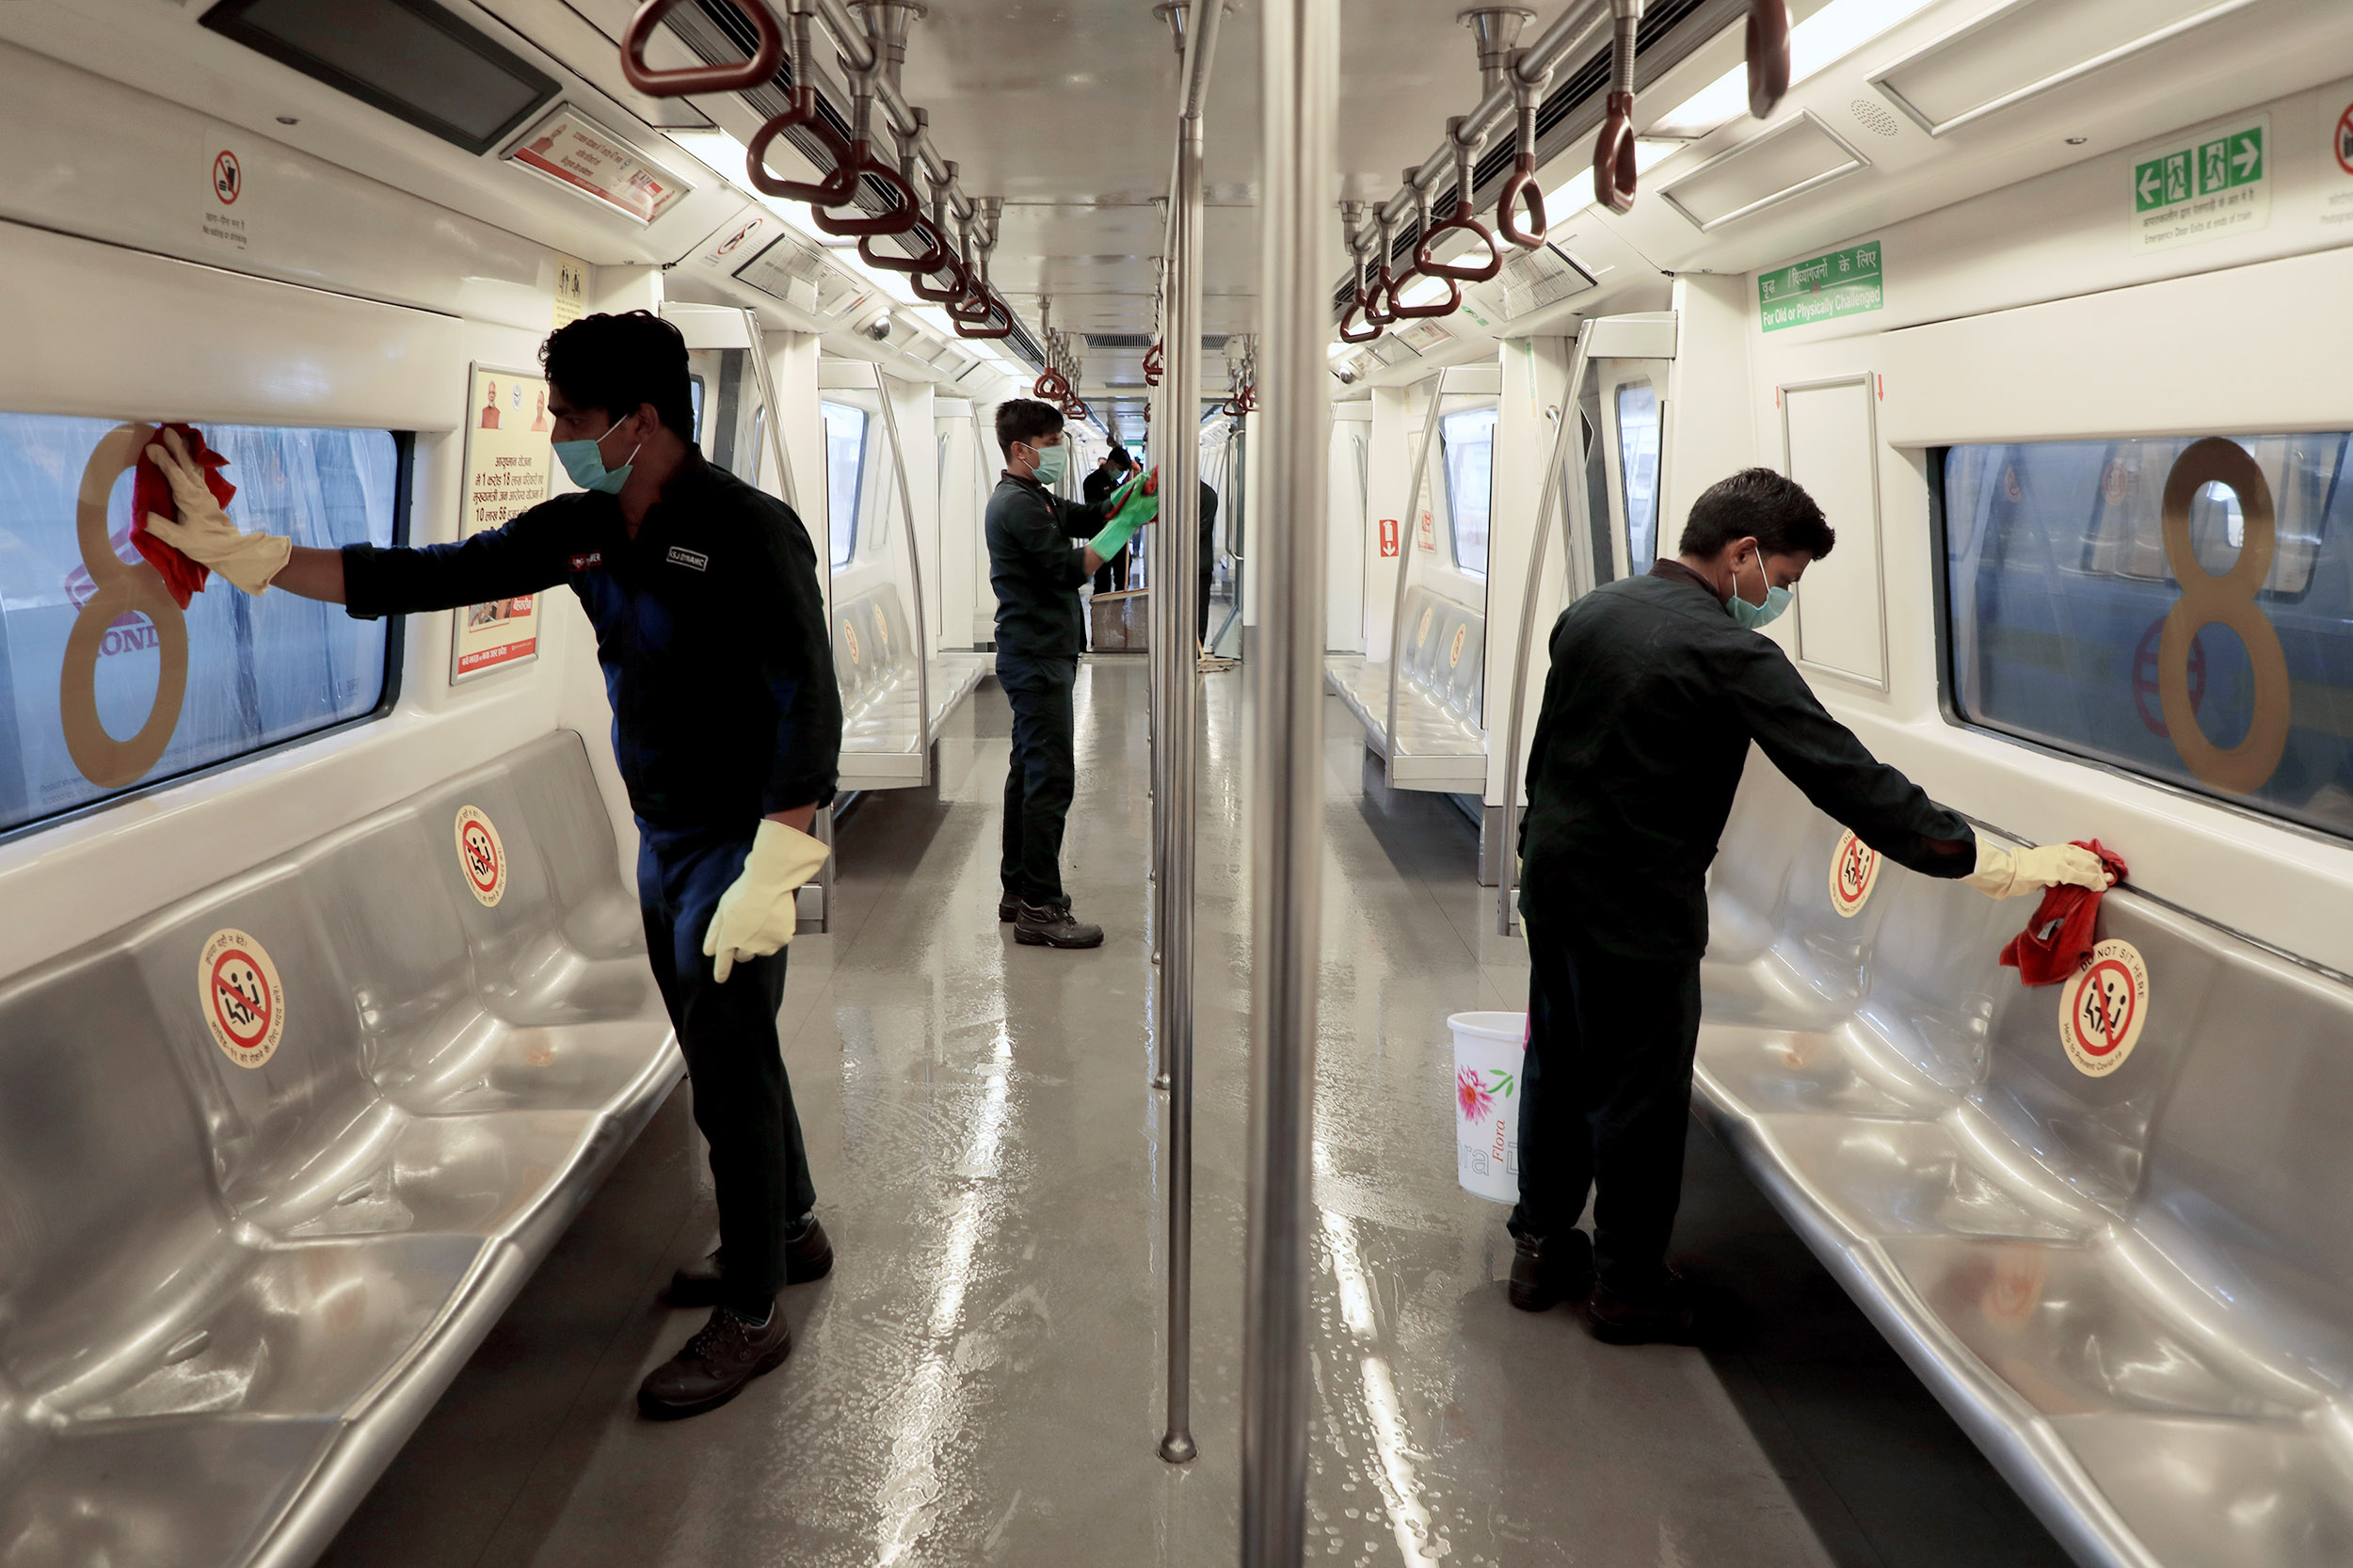 Workers disinfect the interior of a Delhi metro rail carriage at the Khyber Pass metro depot ahead of the resumption of services in New Delhi on Sunday, September 6.